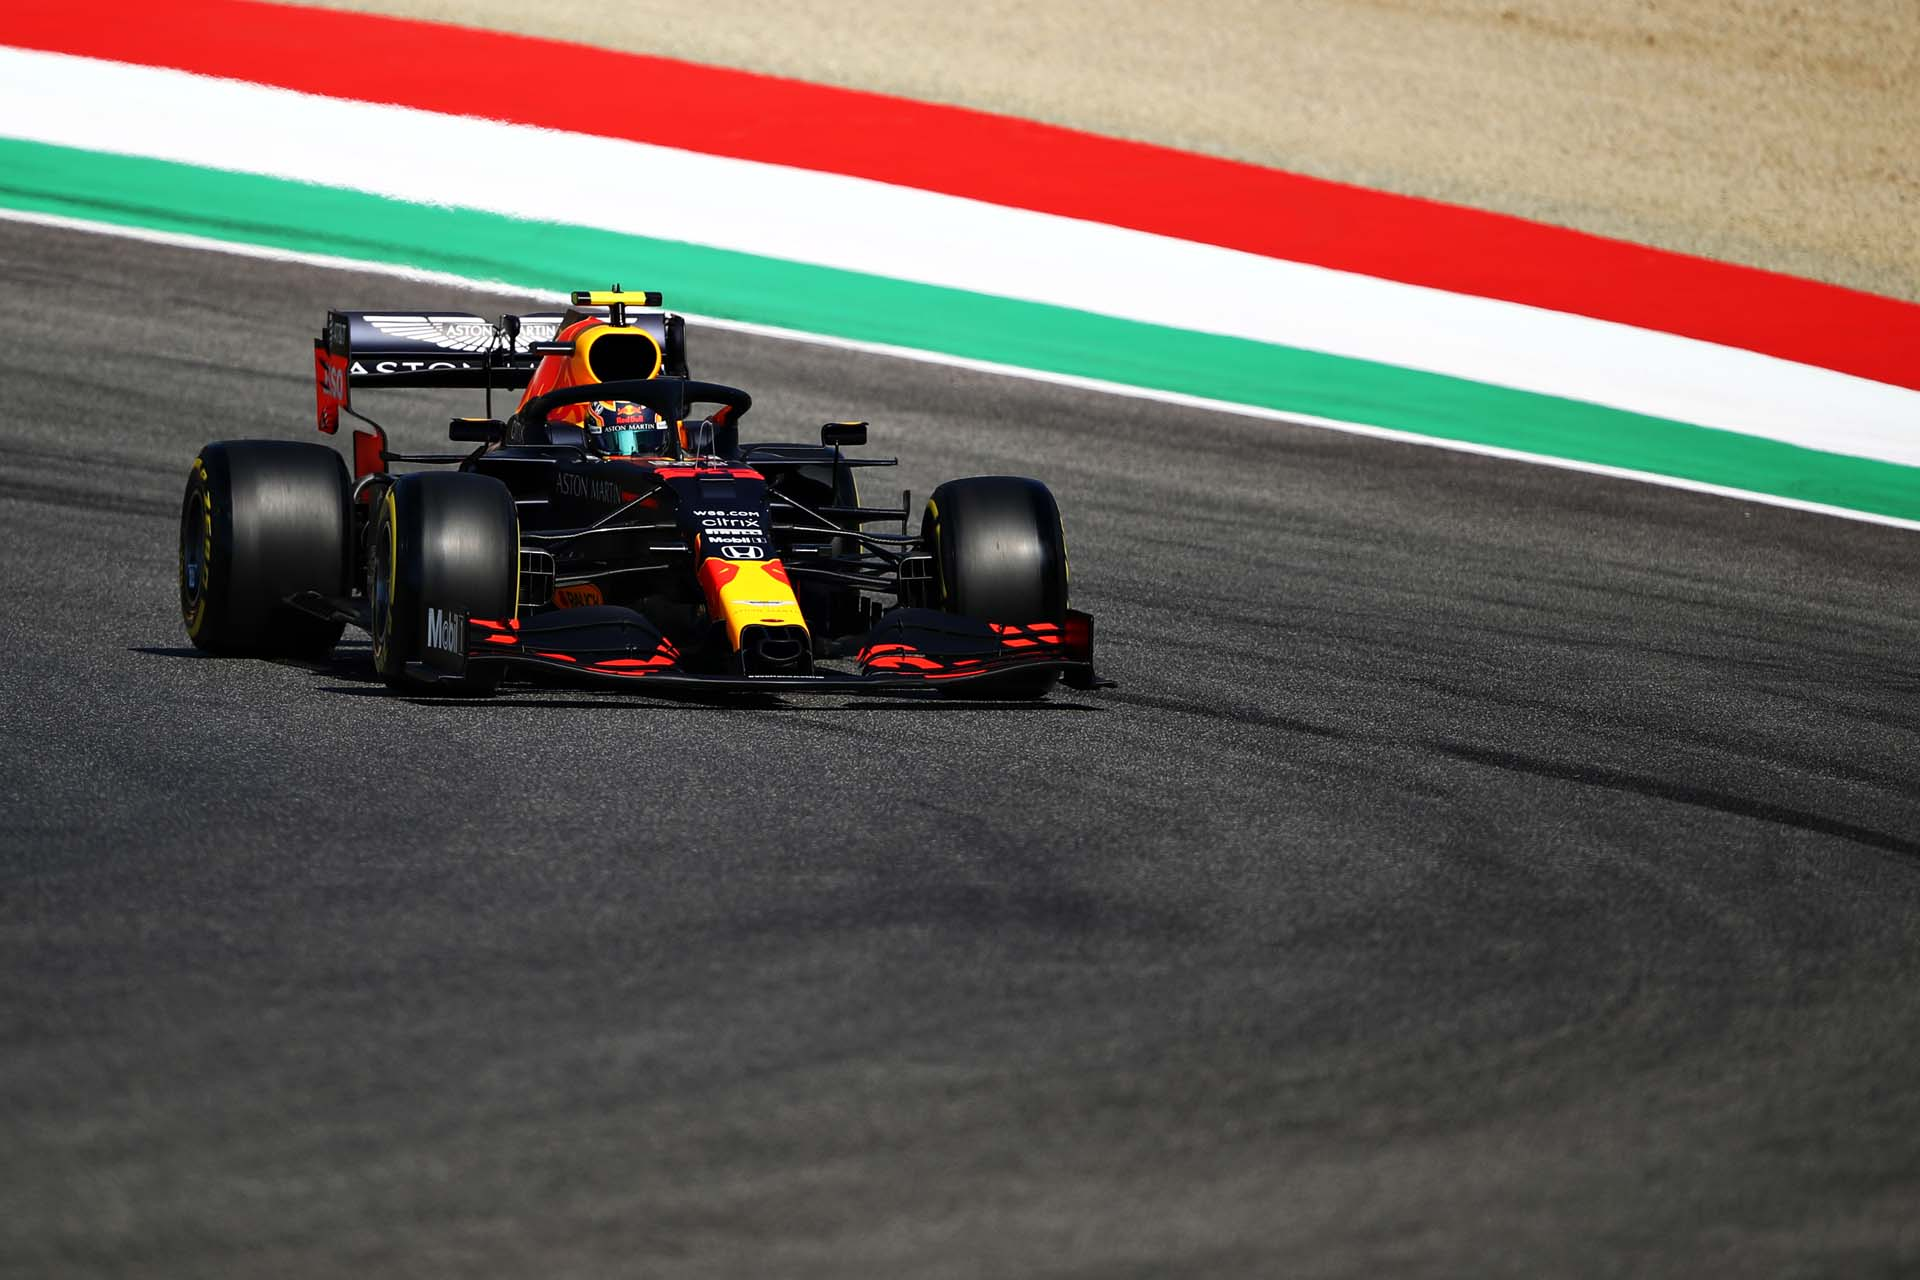 F1 Grand Prix of Tuscany - Final Practice